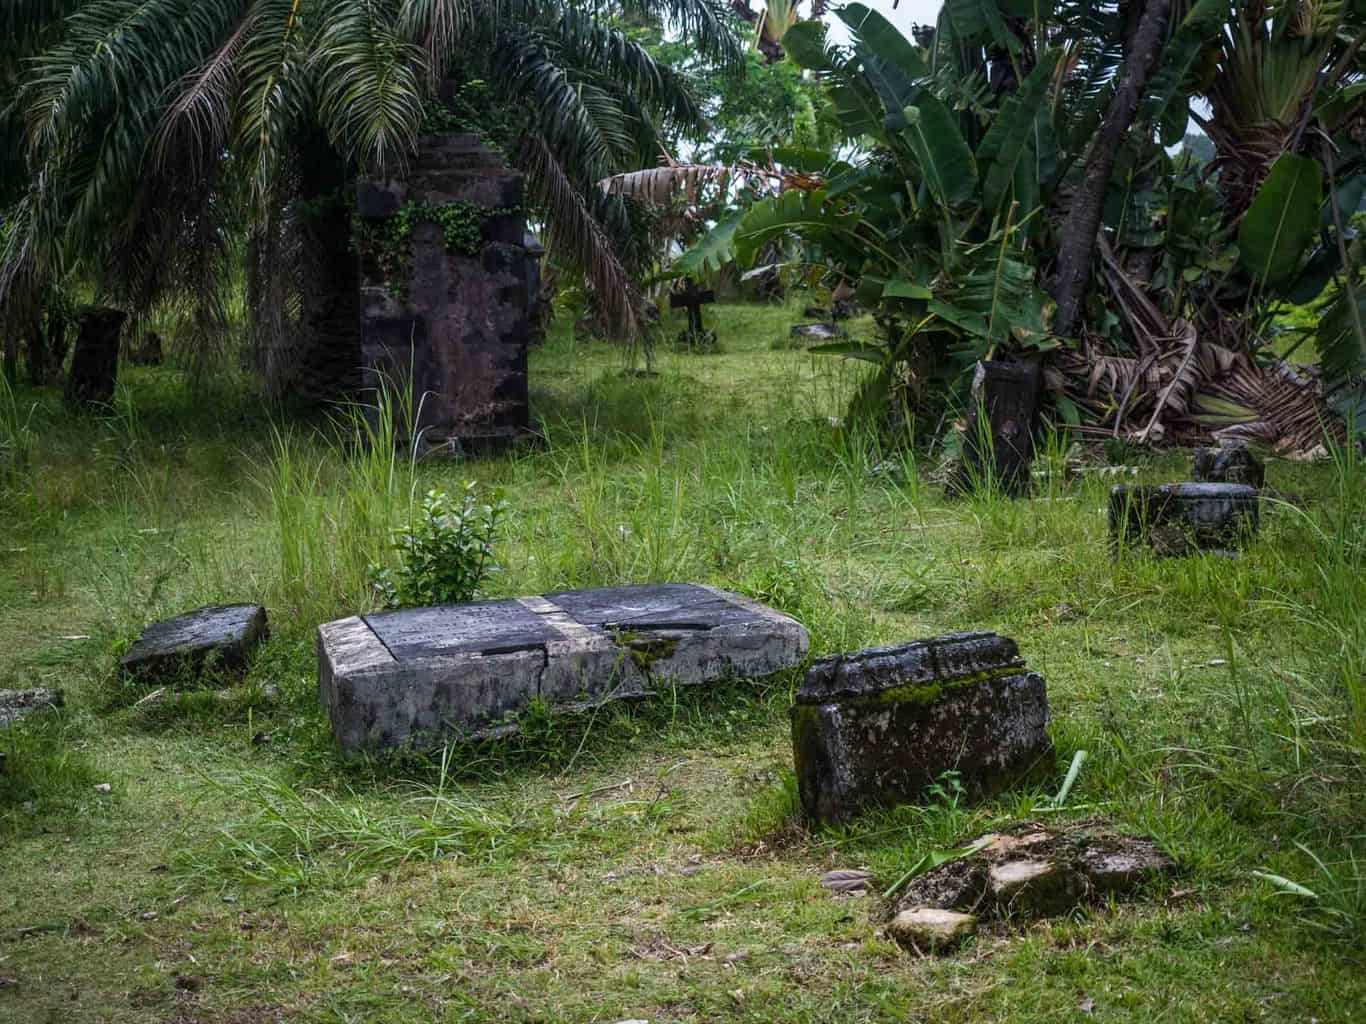 pirate cemetery with real pirate graves in Madagascar